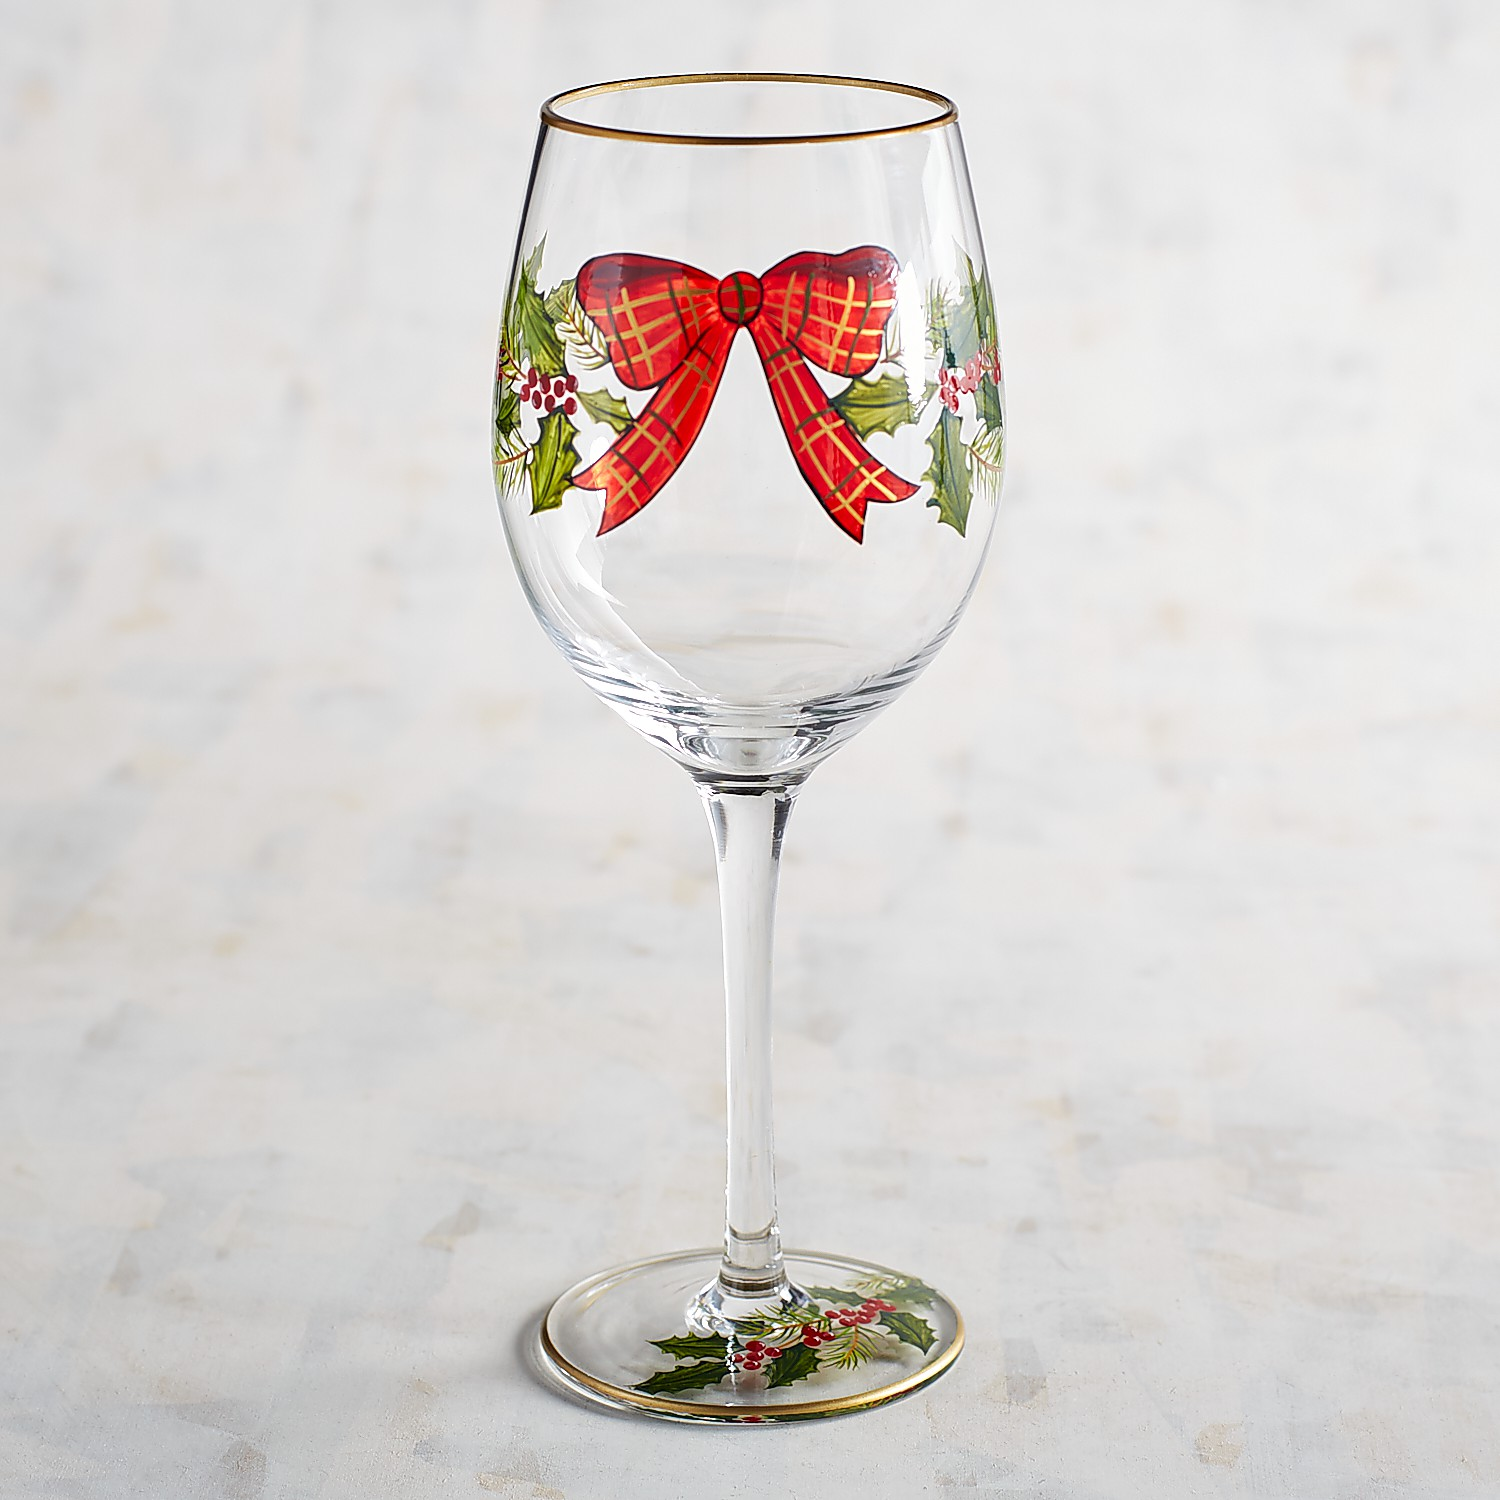 Plaid Bow & Garland Hand-Painted Wine Glass